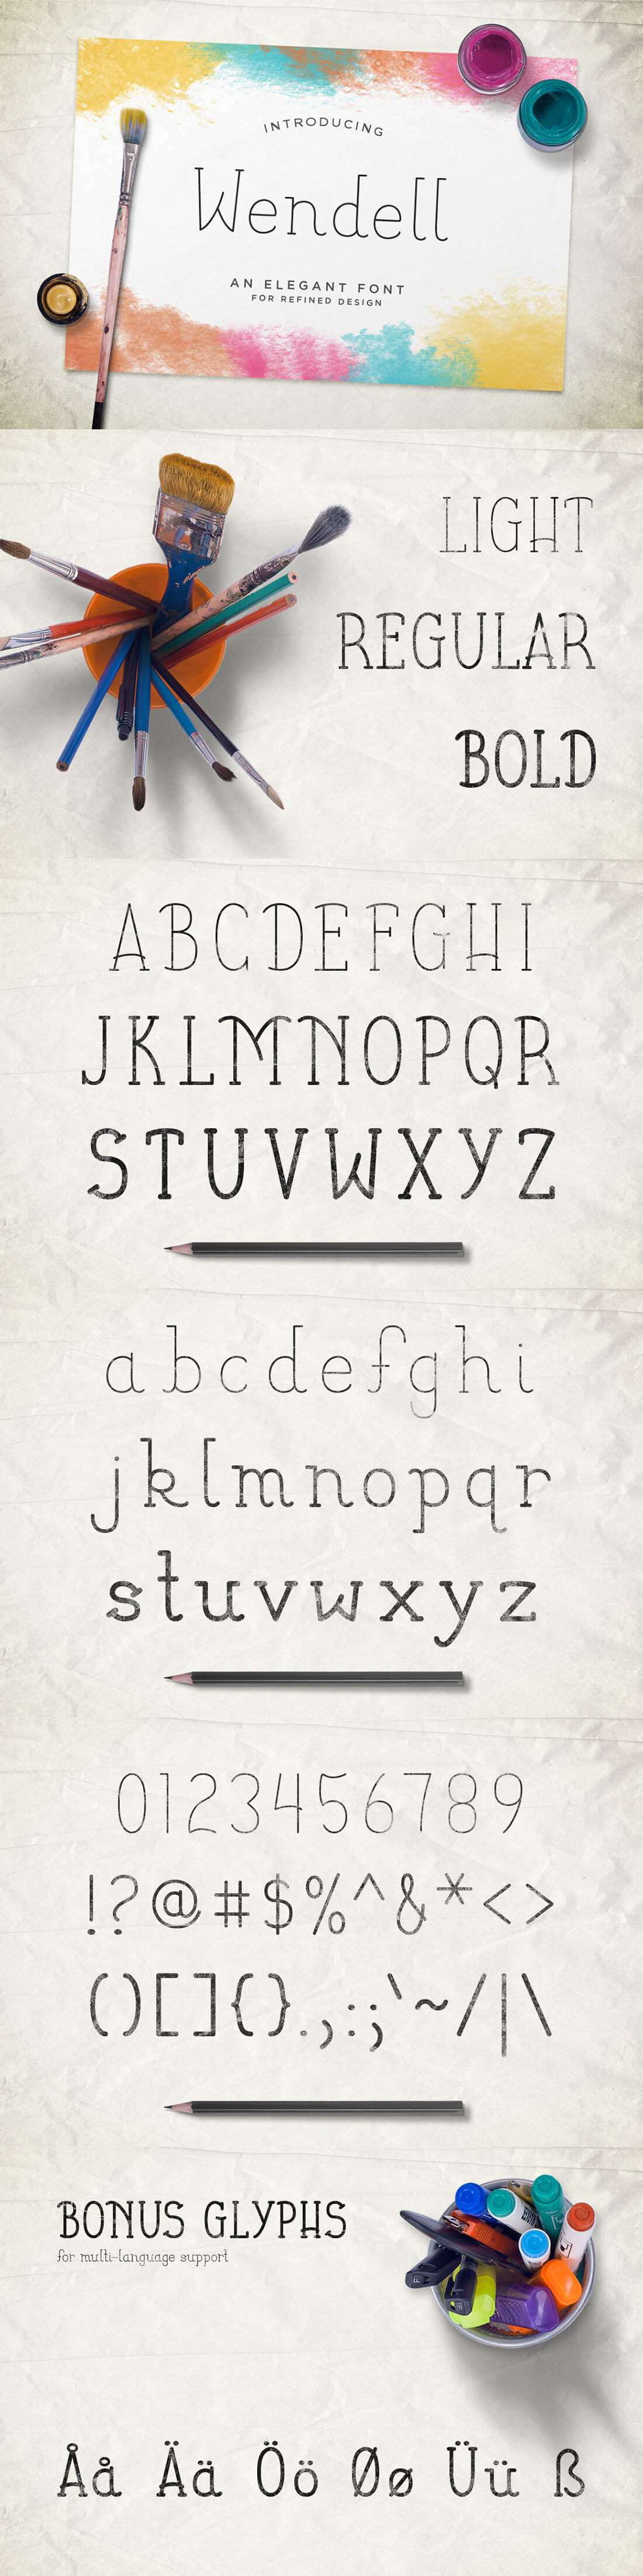 LAST CHANCE: 11 Professional Fonts (and extras) from Design Panoply